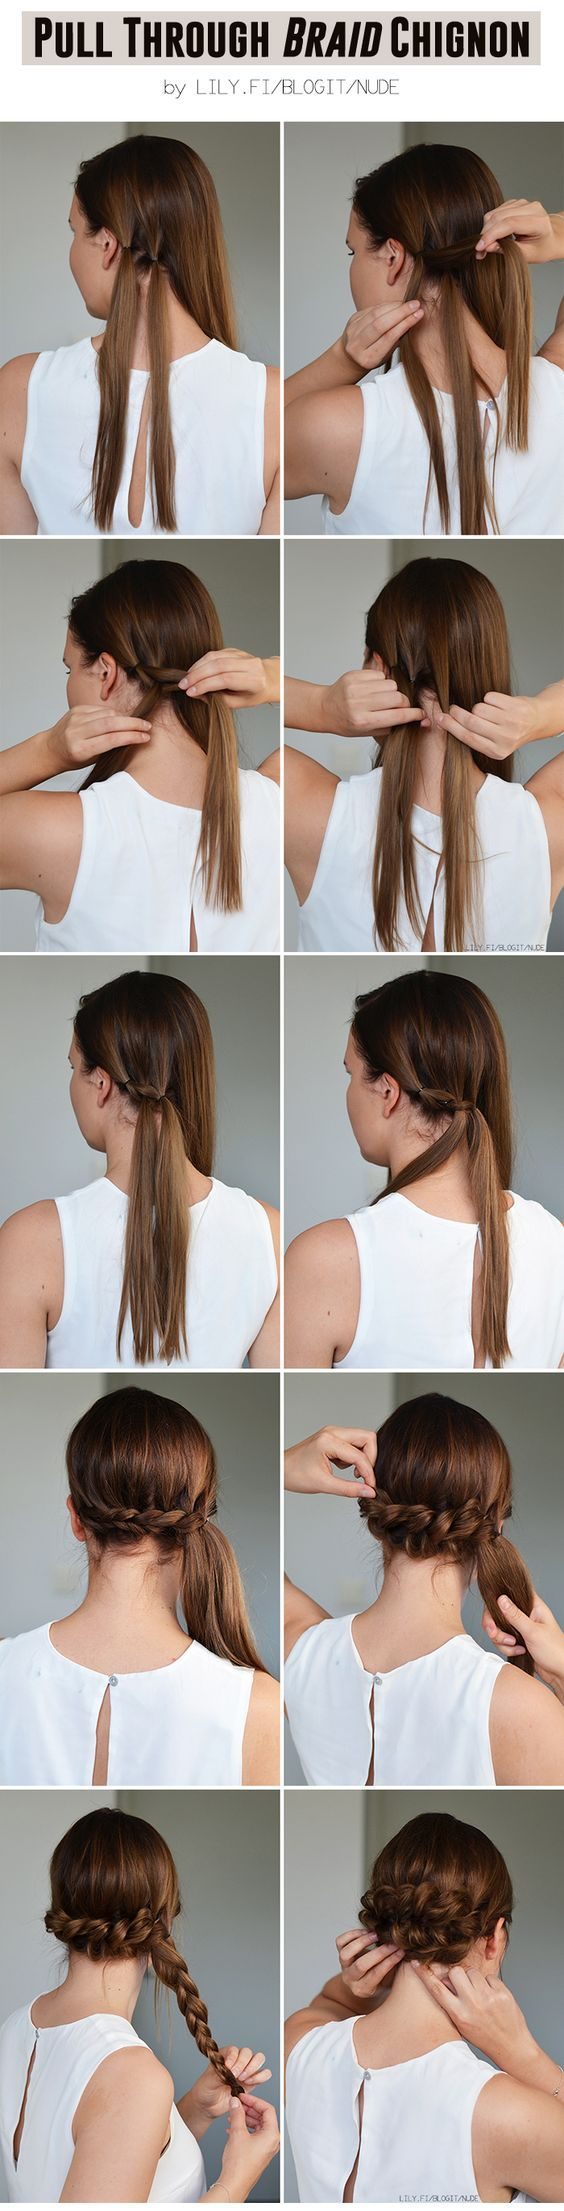 Pull Through Braid Chignon for a wedding or on a date <3: